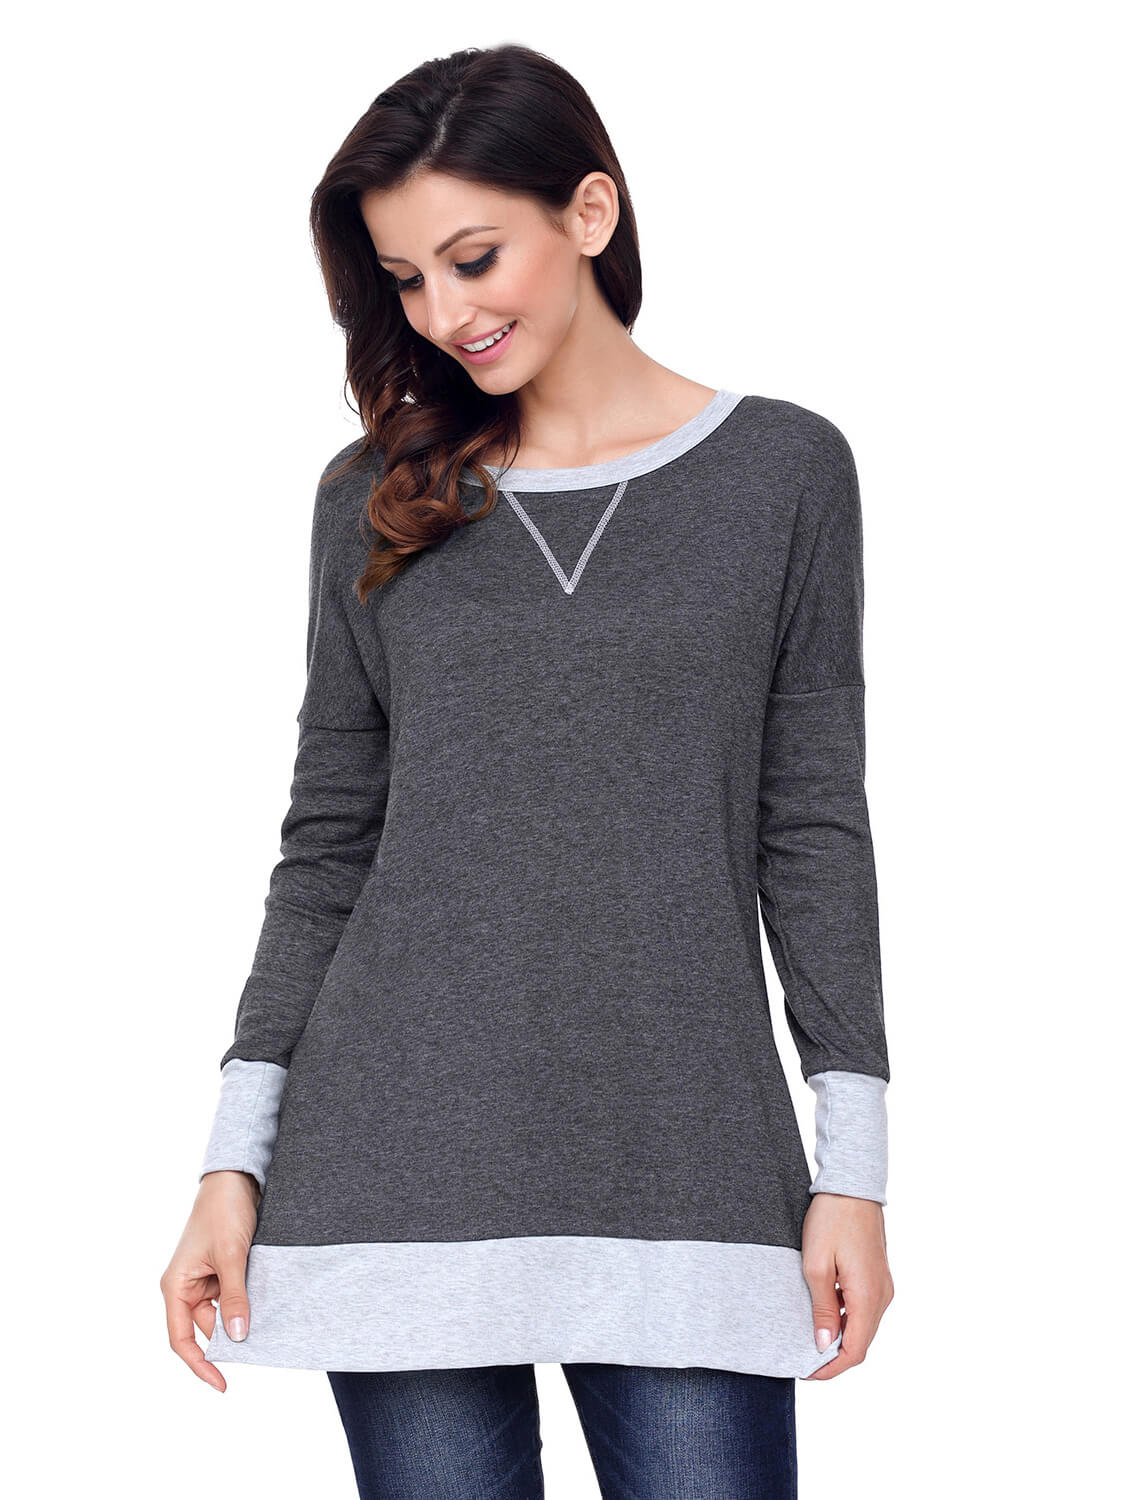 2e391f2955b Charcoal Side Pocket Elbow Patch Colorblock Tunic – WhatsMode